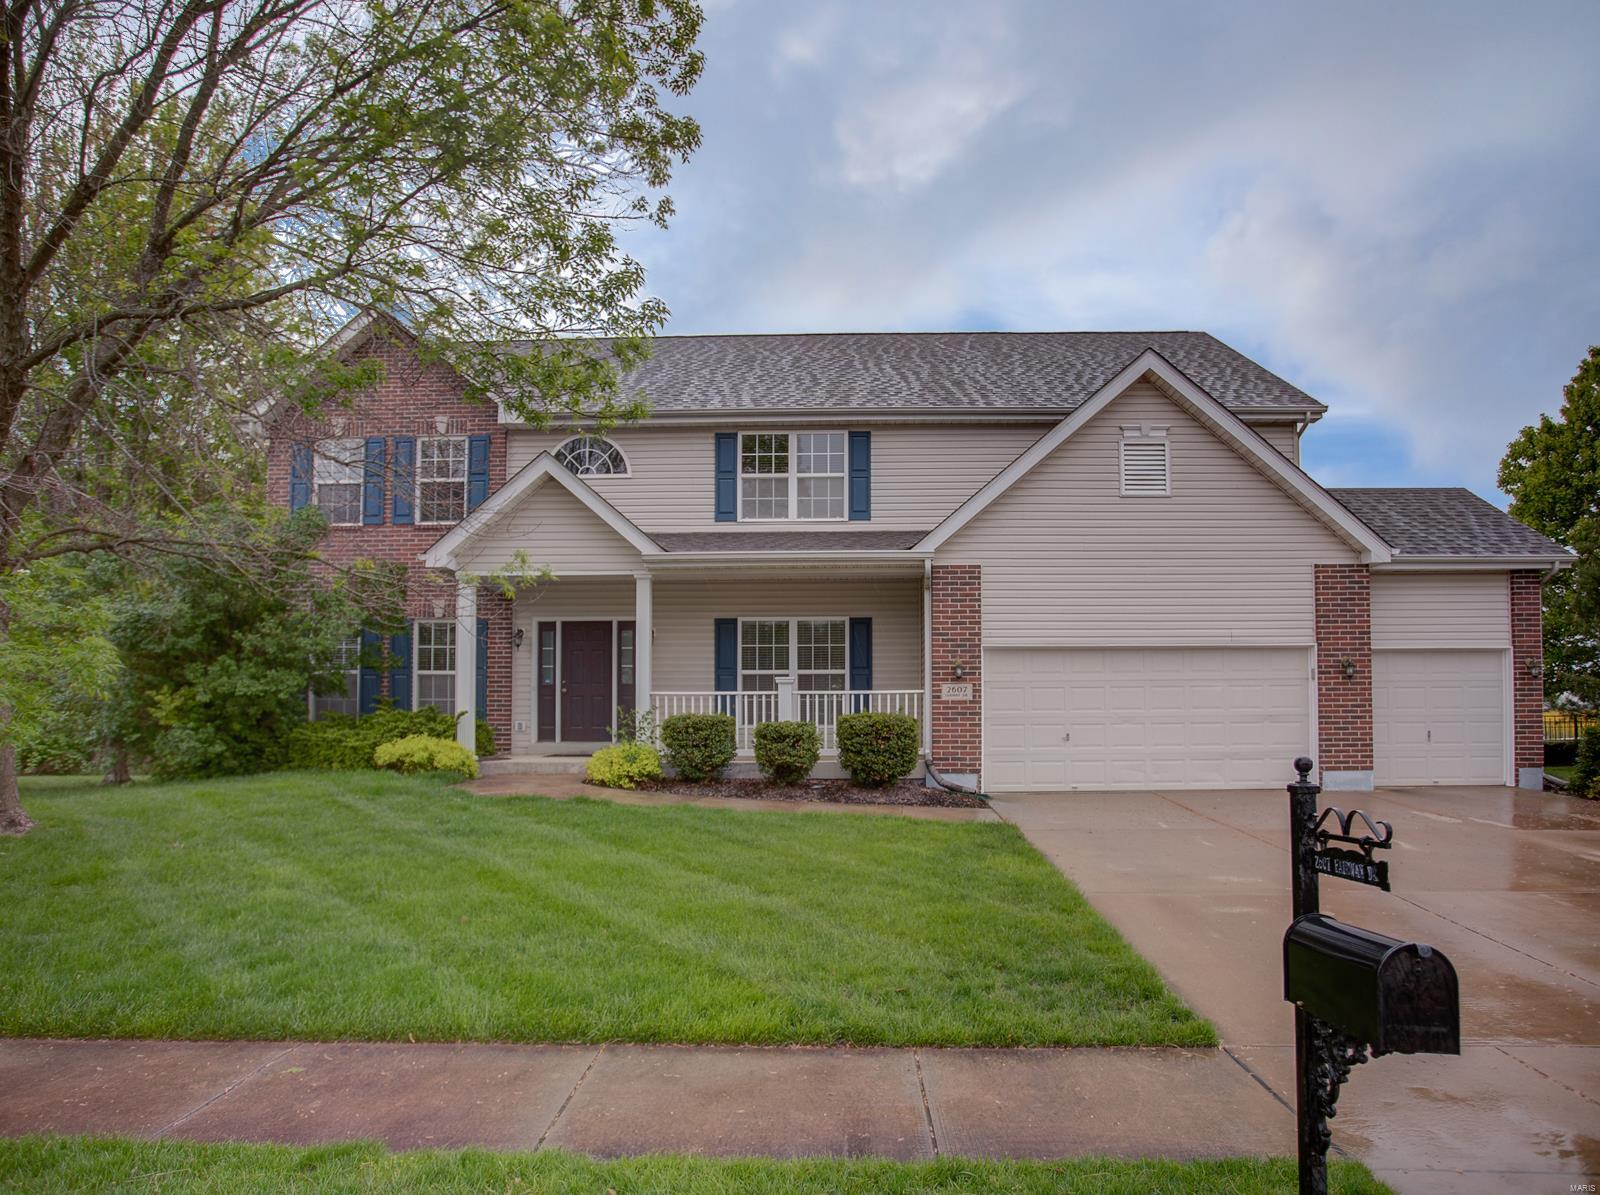 2607 Fairway Drive Property Photo - Belleville, IL real estate listing